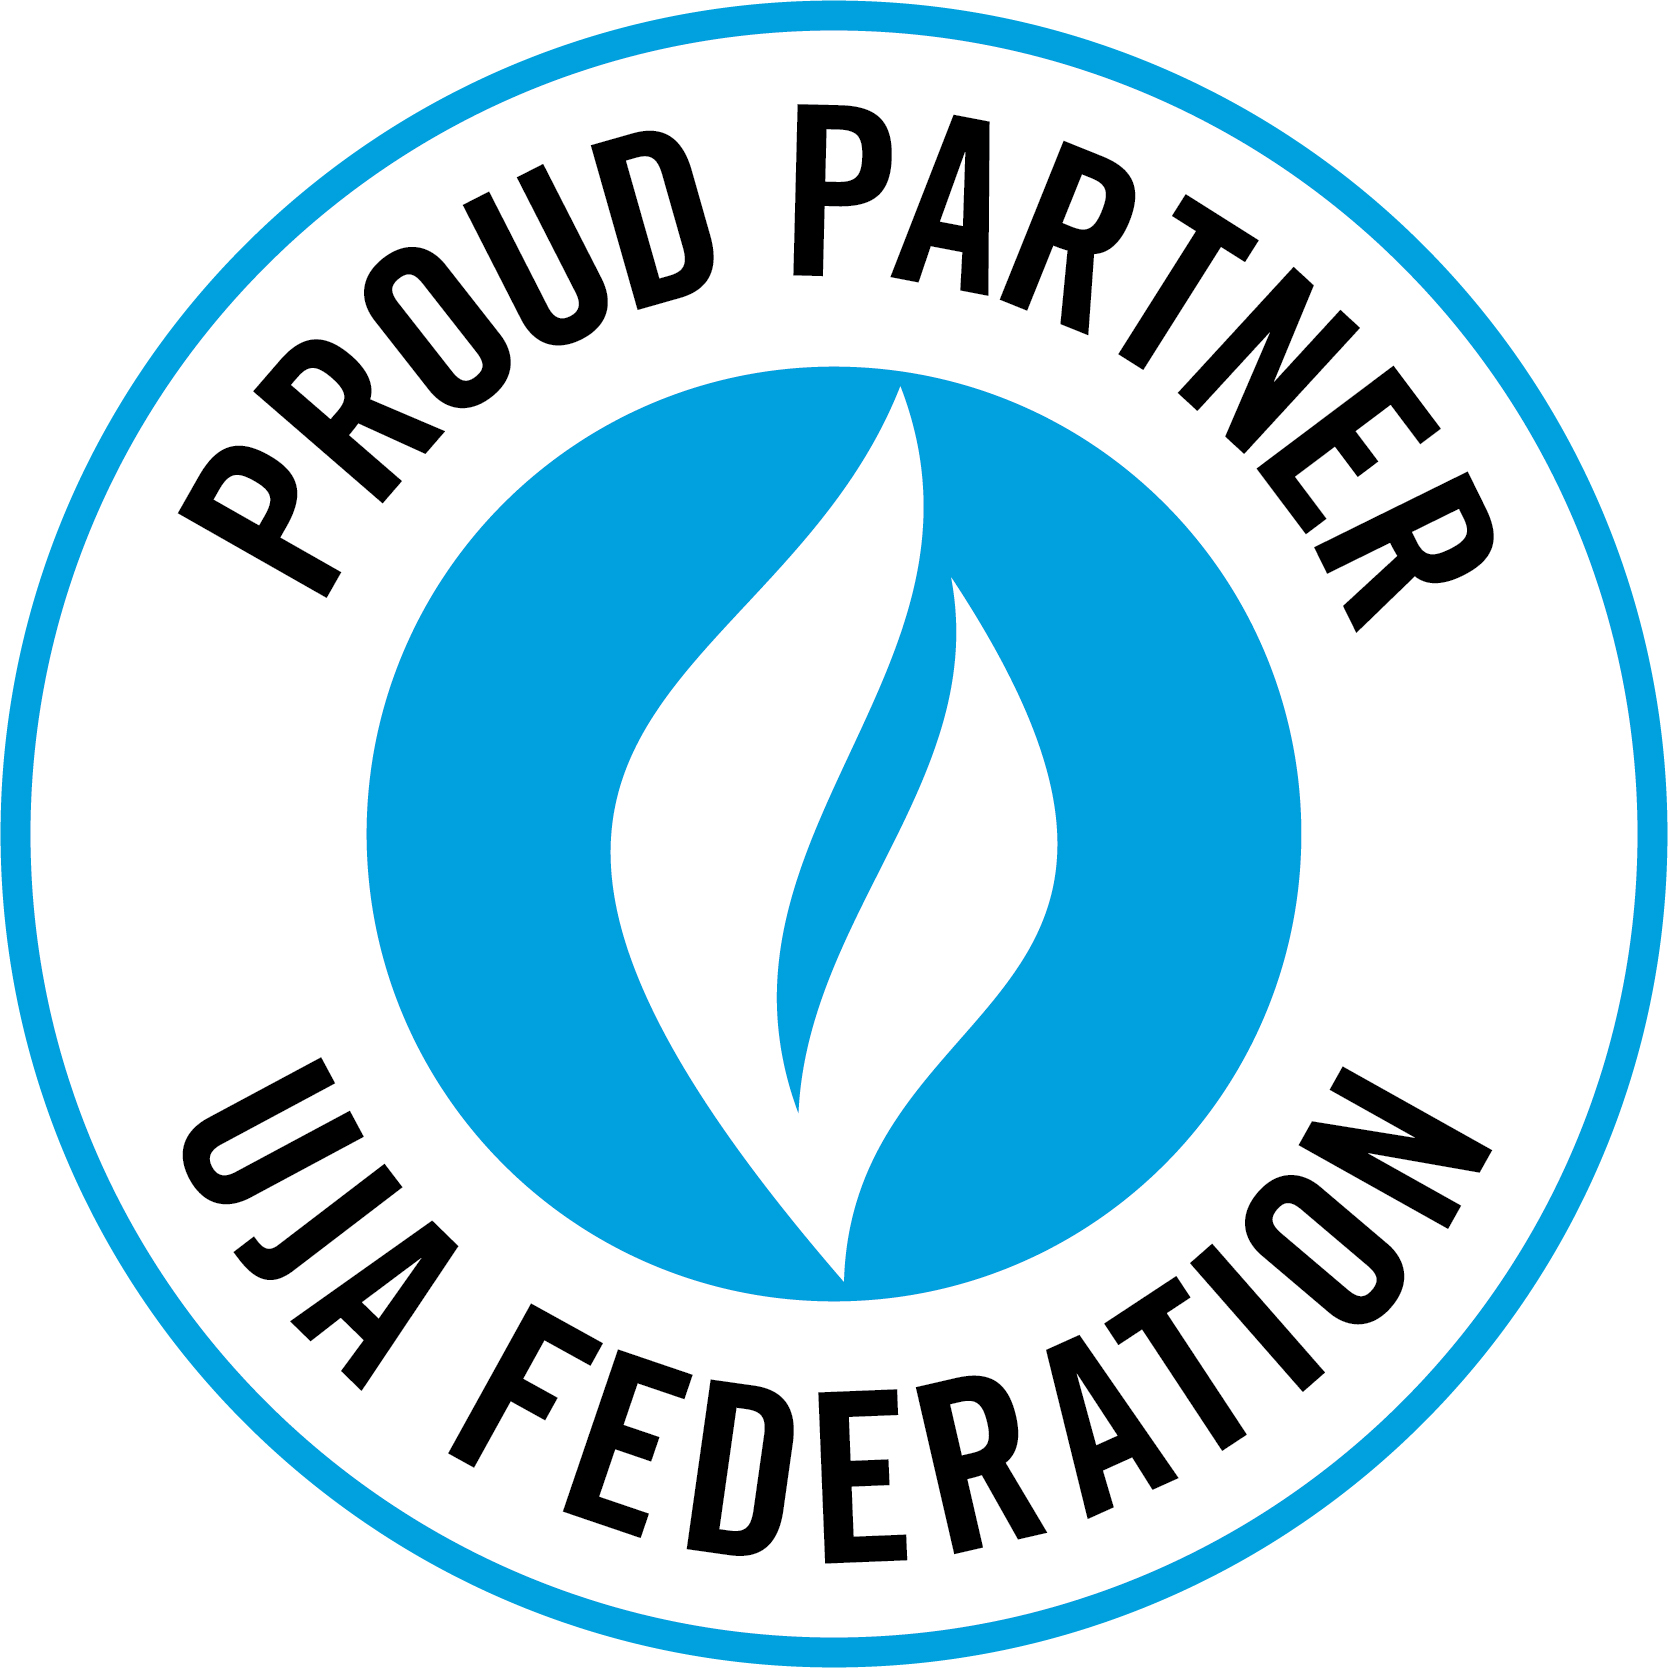 UJA_SoA_Proud_Partner_primary_RGB.jpg